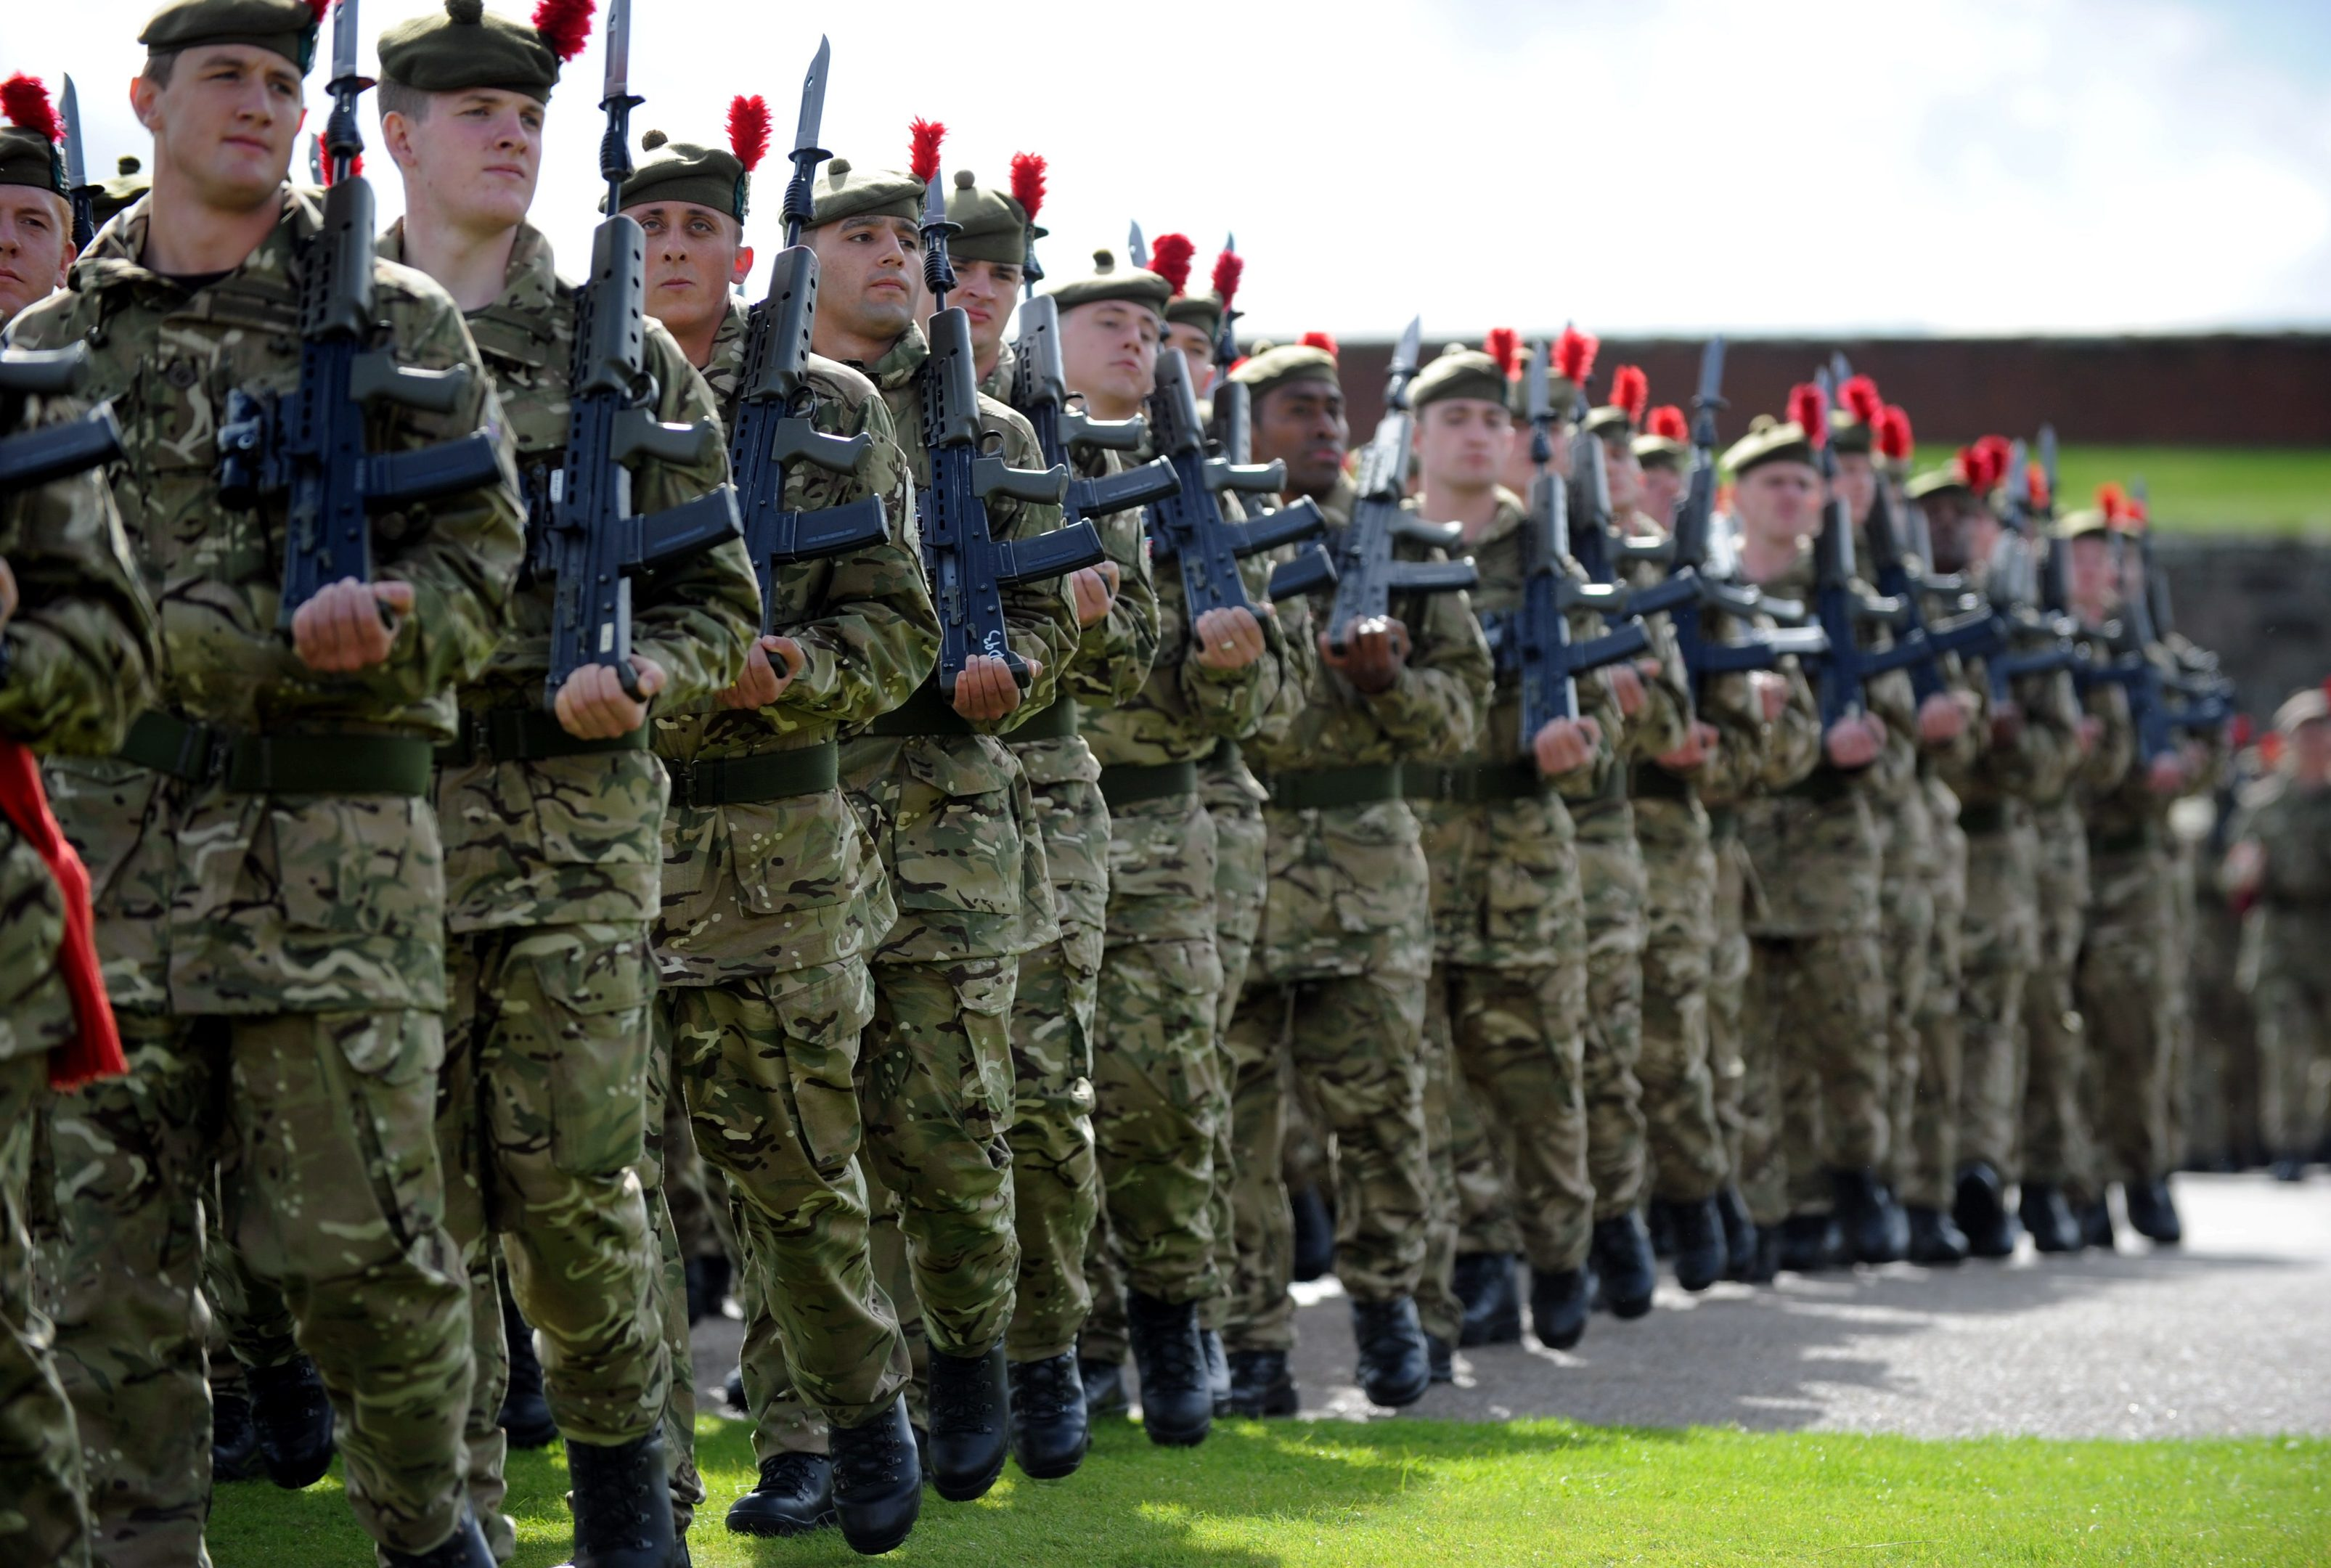 The Black Watch, 3 Scots, Royal Regiment of Scotland.